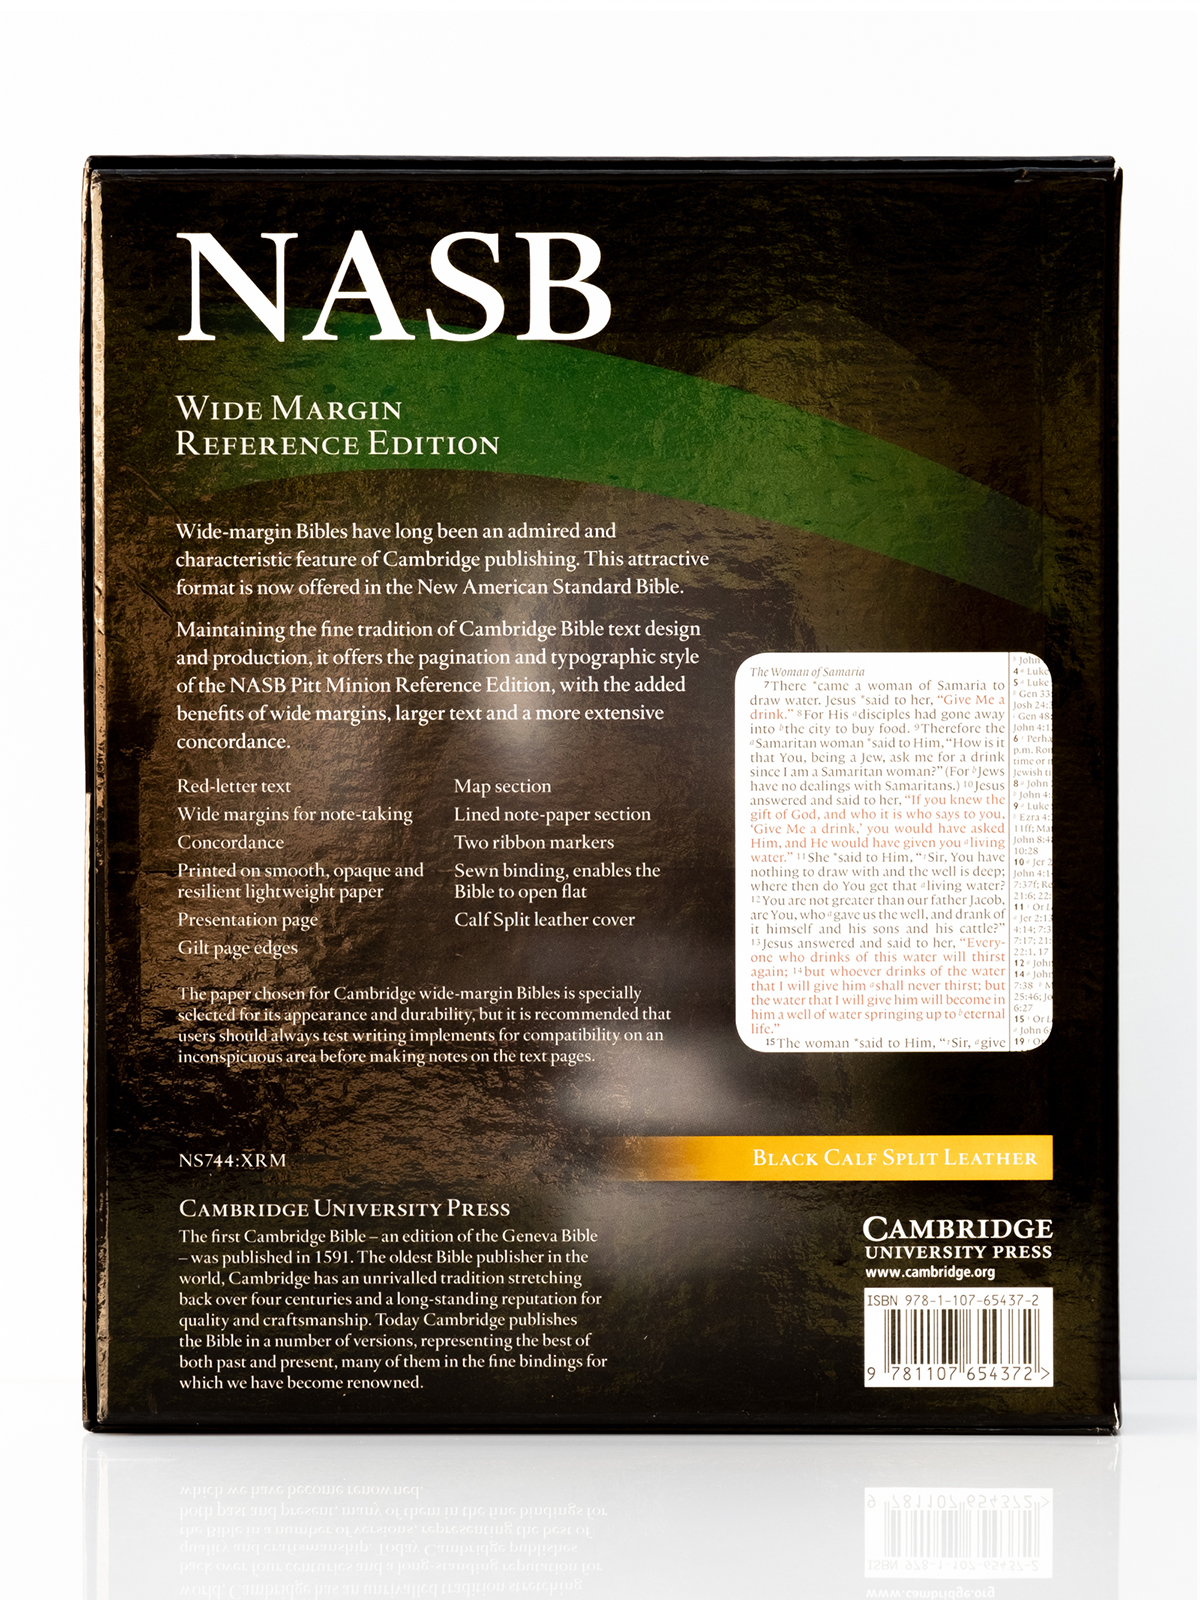 Cambridge NASB Wide Margin Back Cover